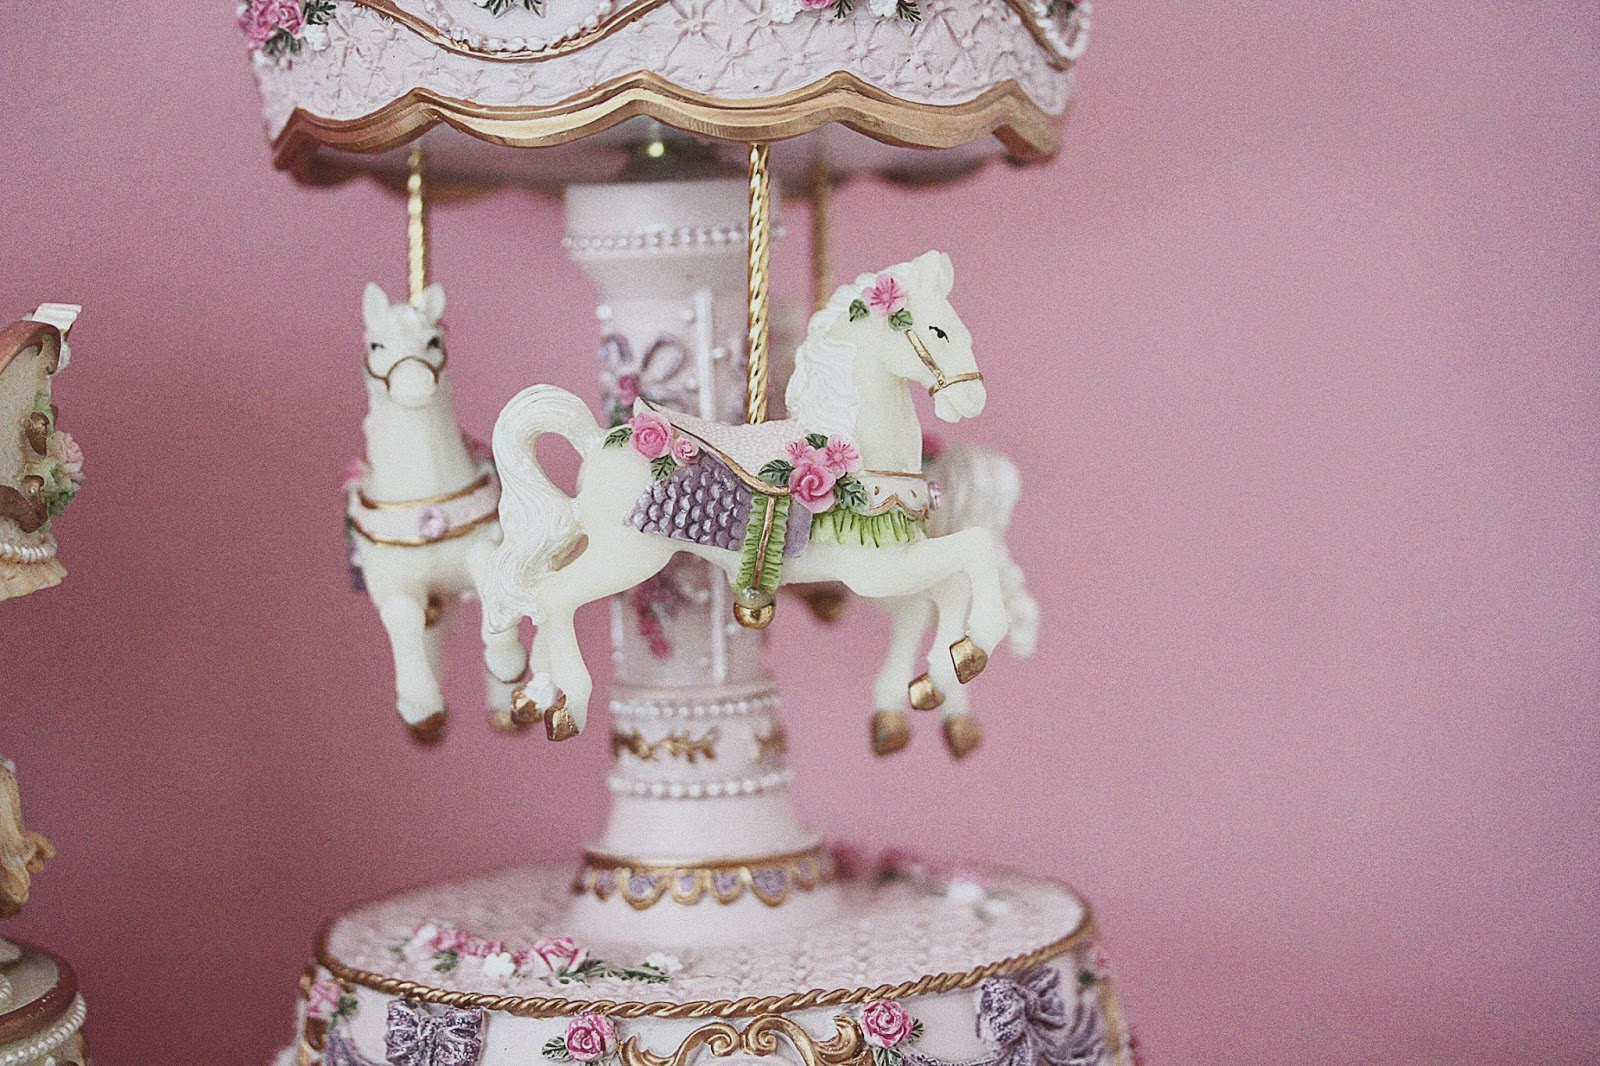 rose mademoiselle - paul and joe carousel beauté